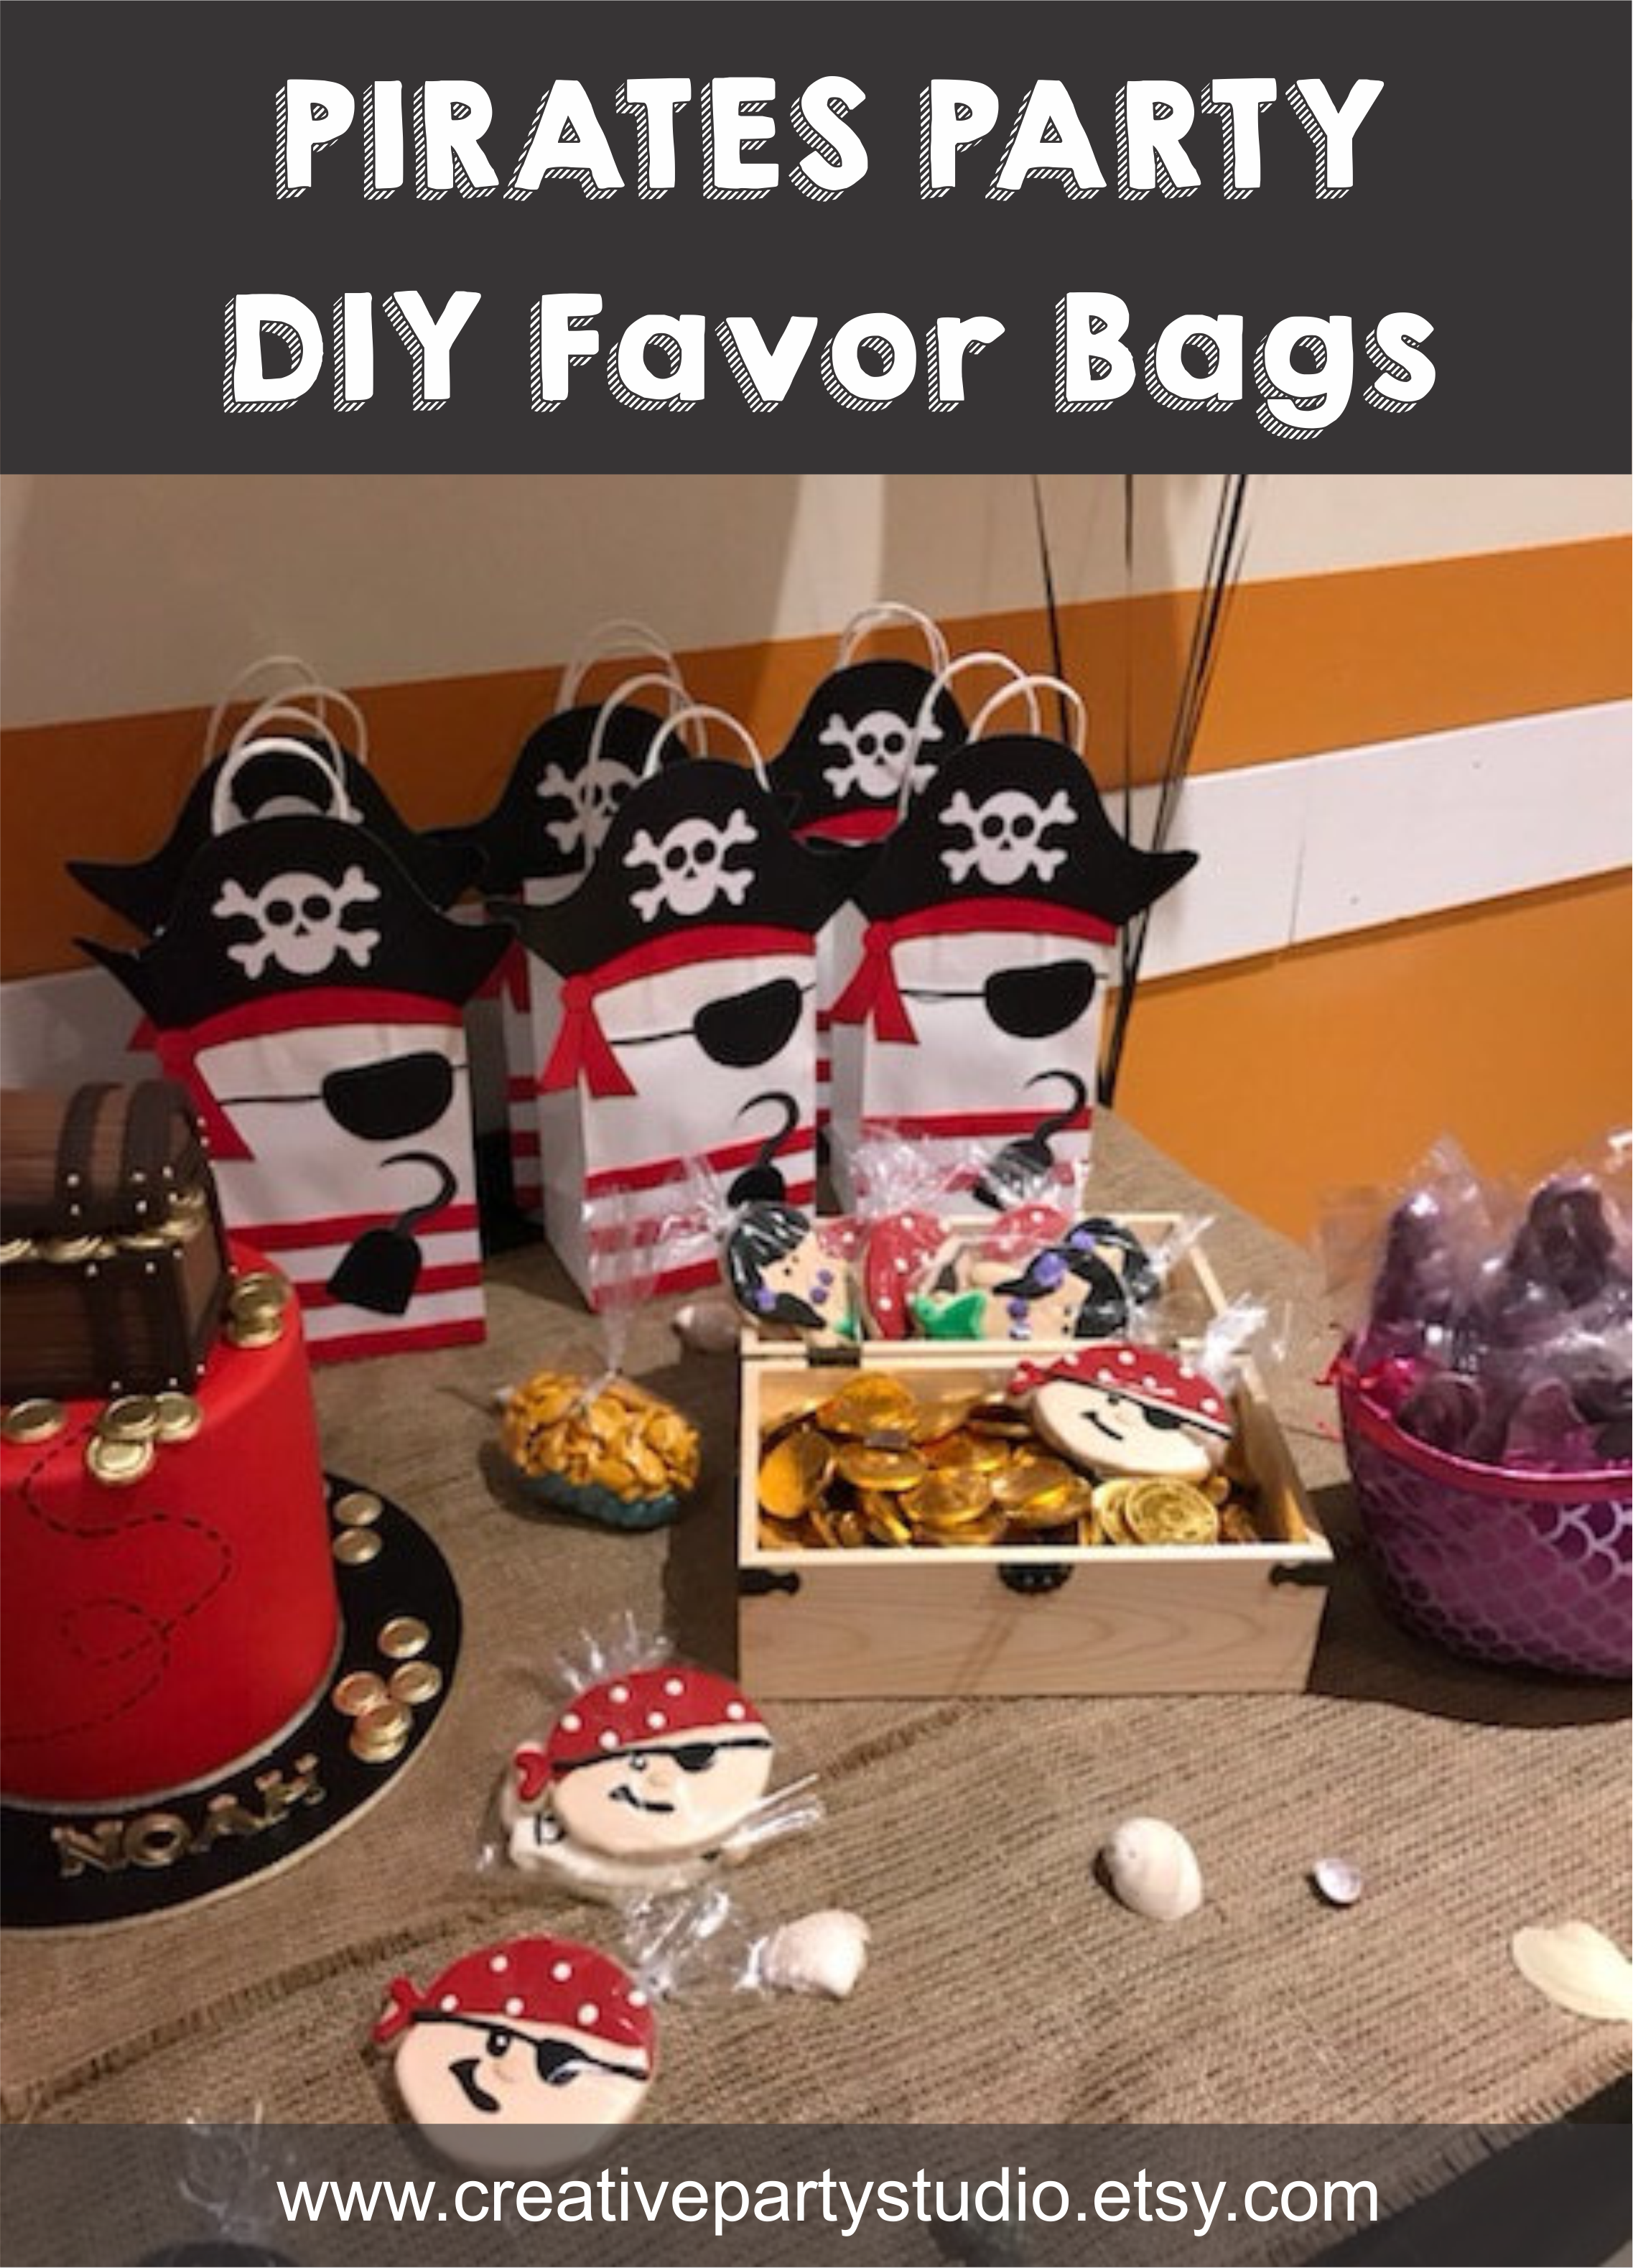 Kids Clothing Shoes Accessories Pirate Birthday Party Pirate Shirt Pirate Party Pirate Party Supplies Girls Clothing Sizes 4 Up